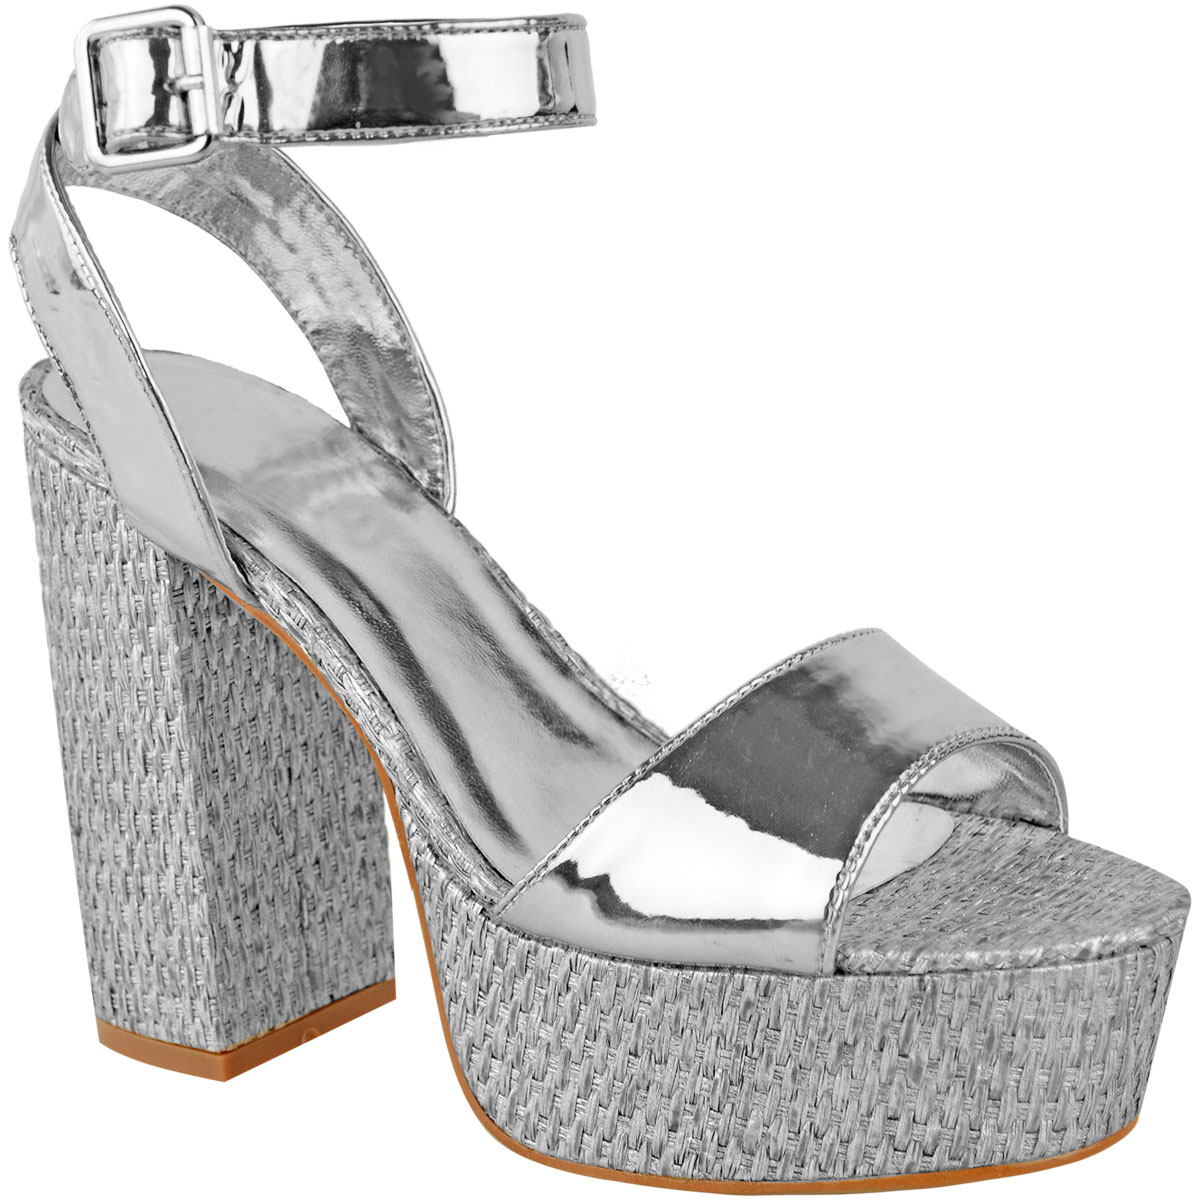 Womens-Ladies-Platforms-Sandals-Block-Heel-Ankle-Strap-Summer-Barely-There-Size thumbnail 8